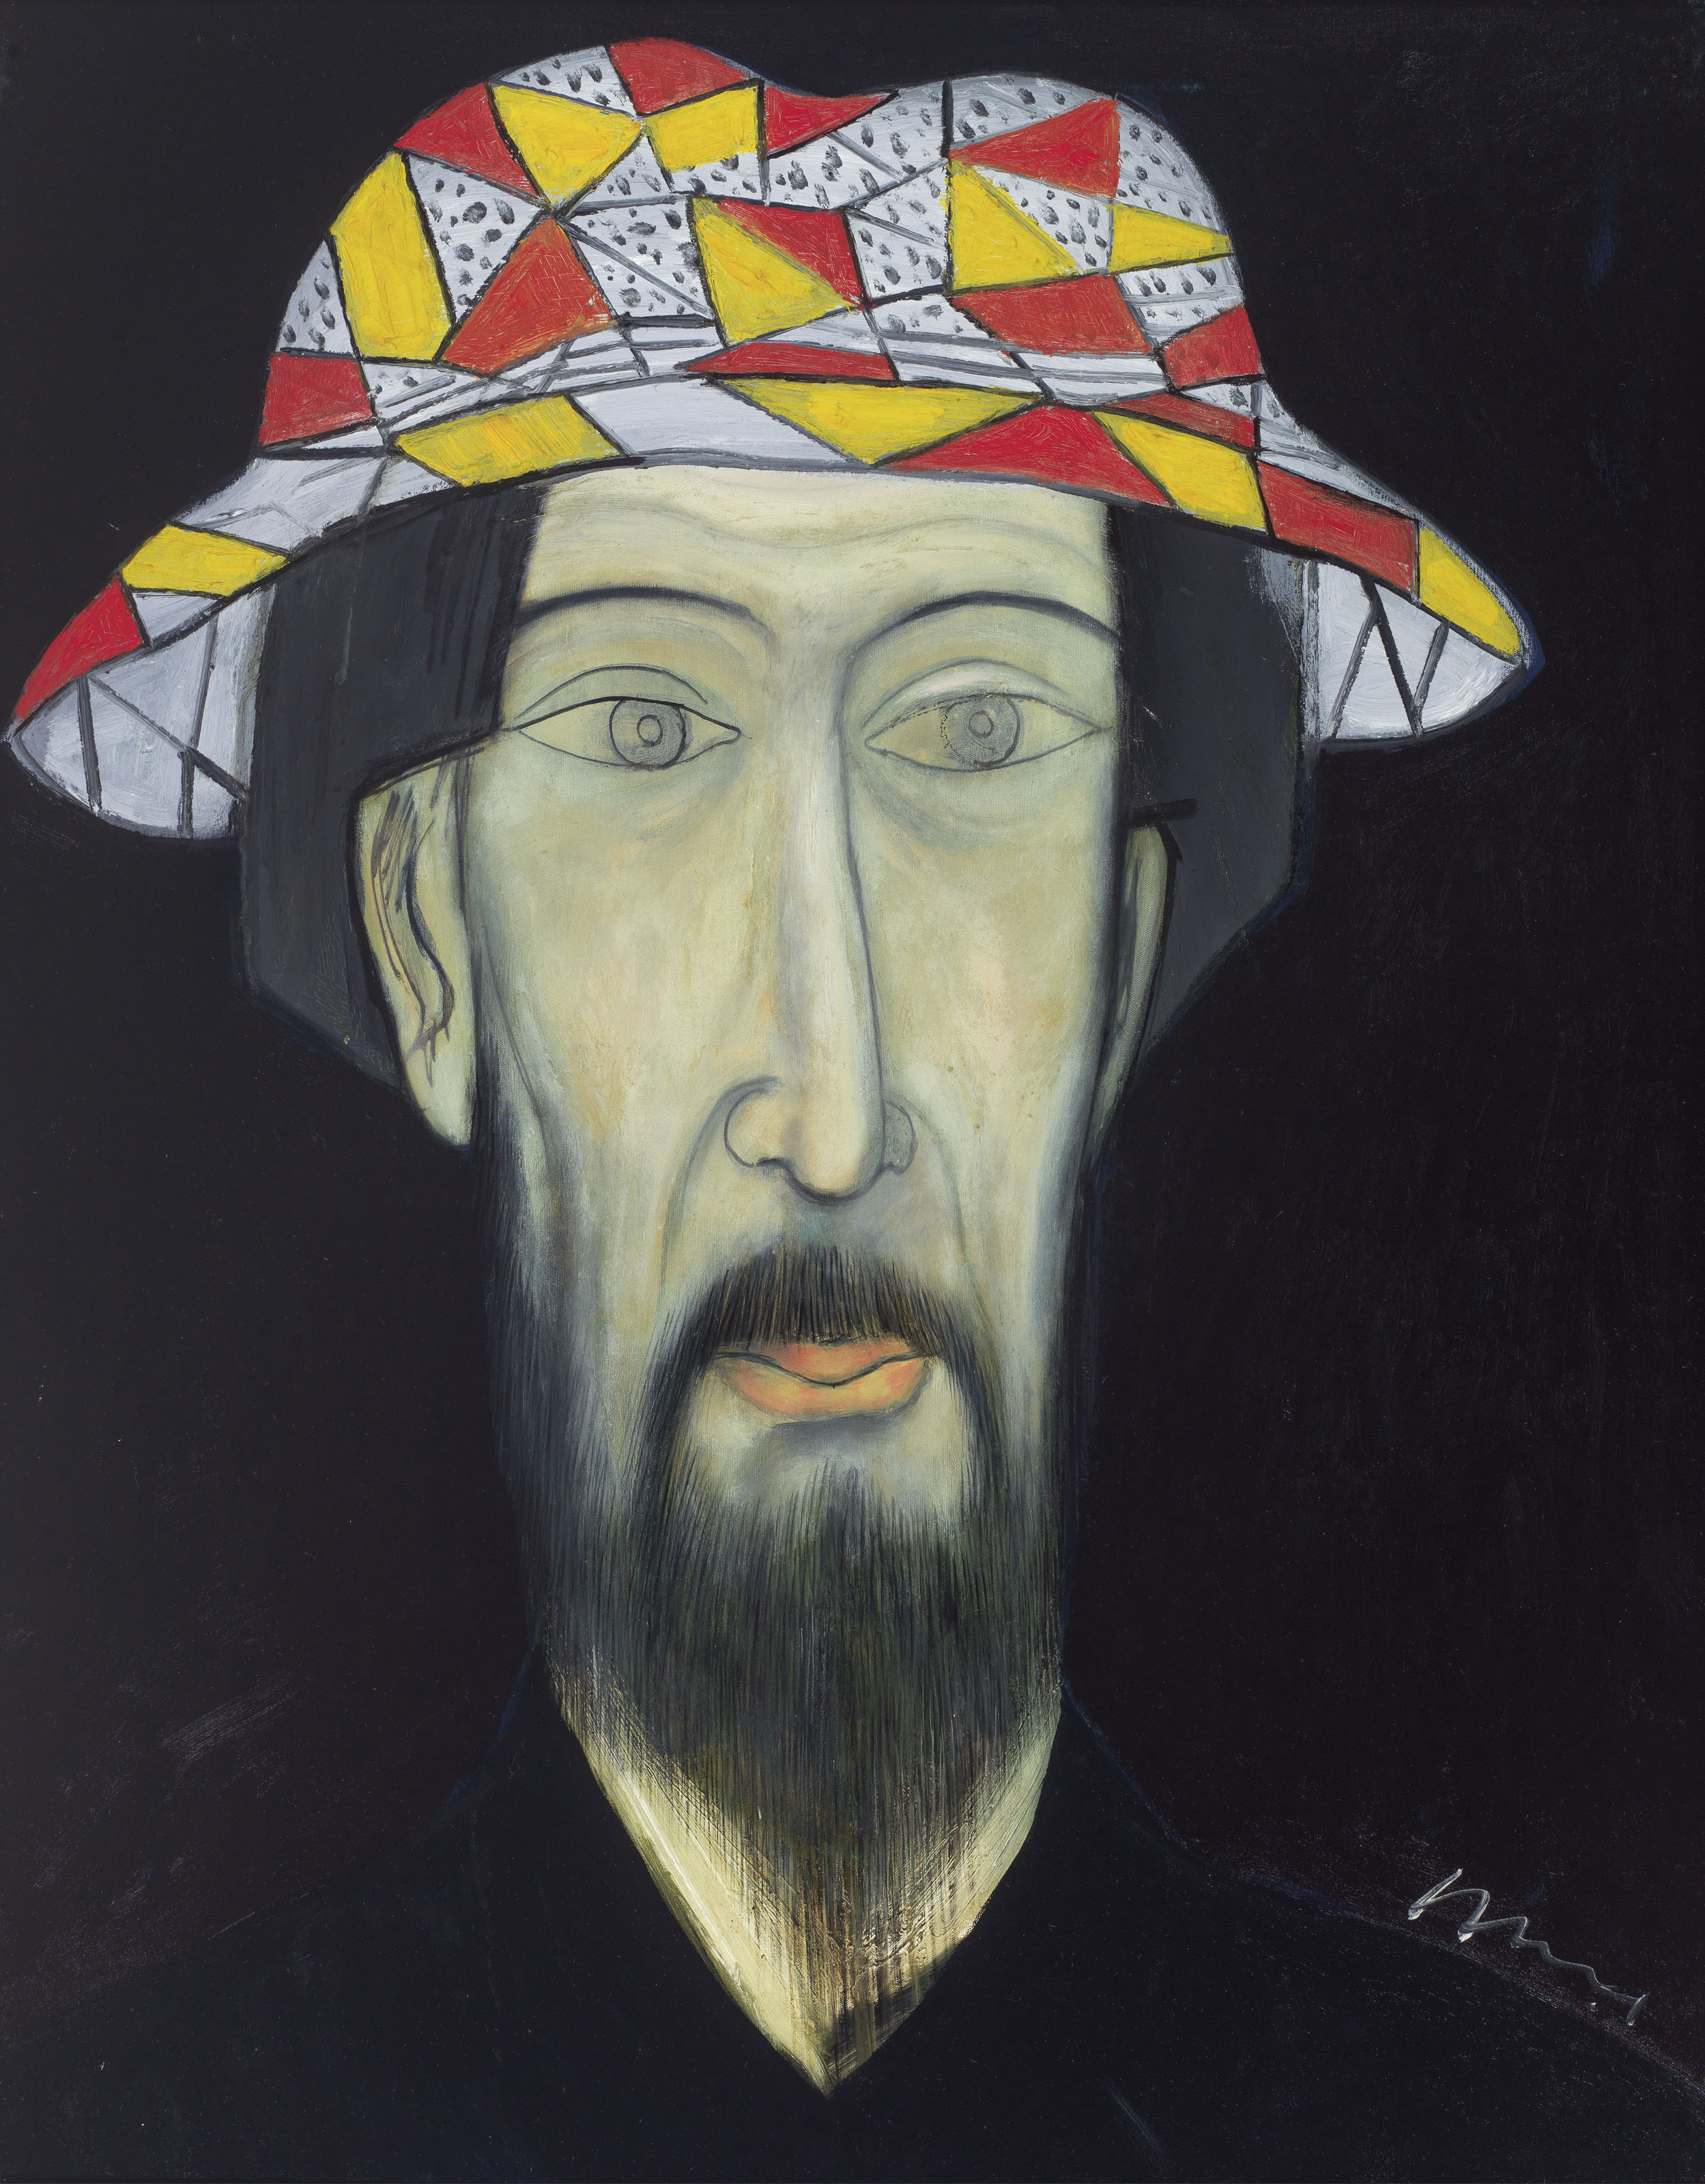 Man Wearing a Patterned Hat